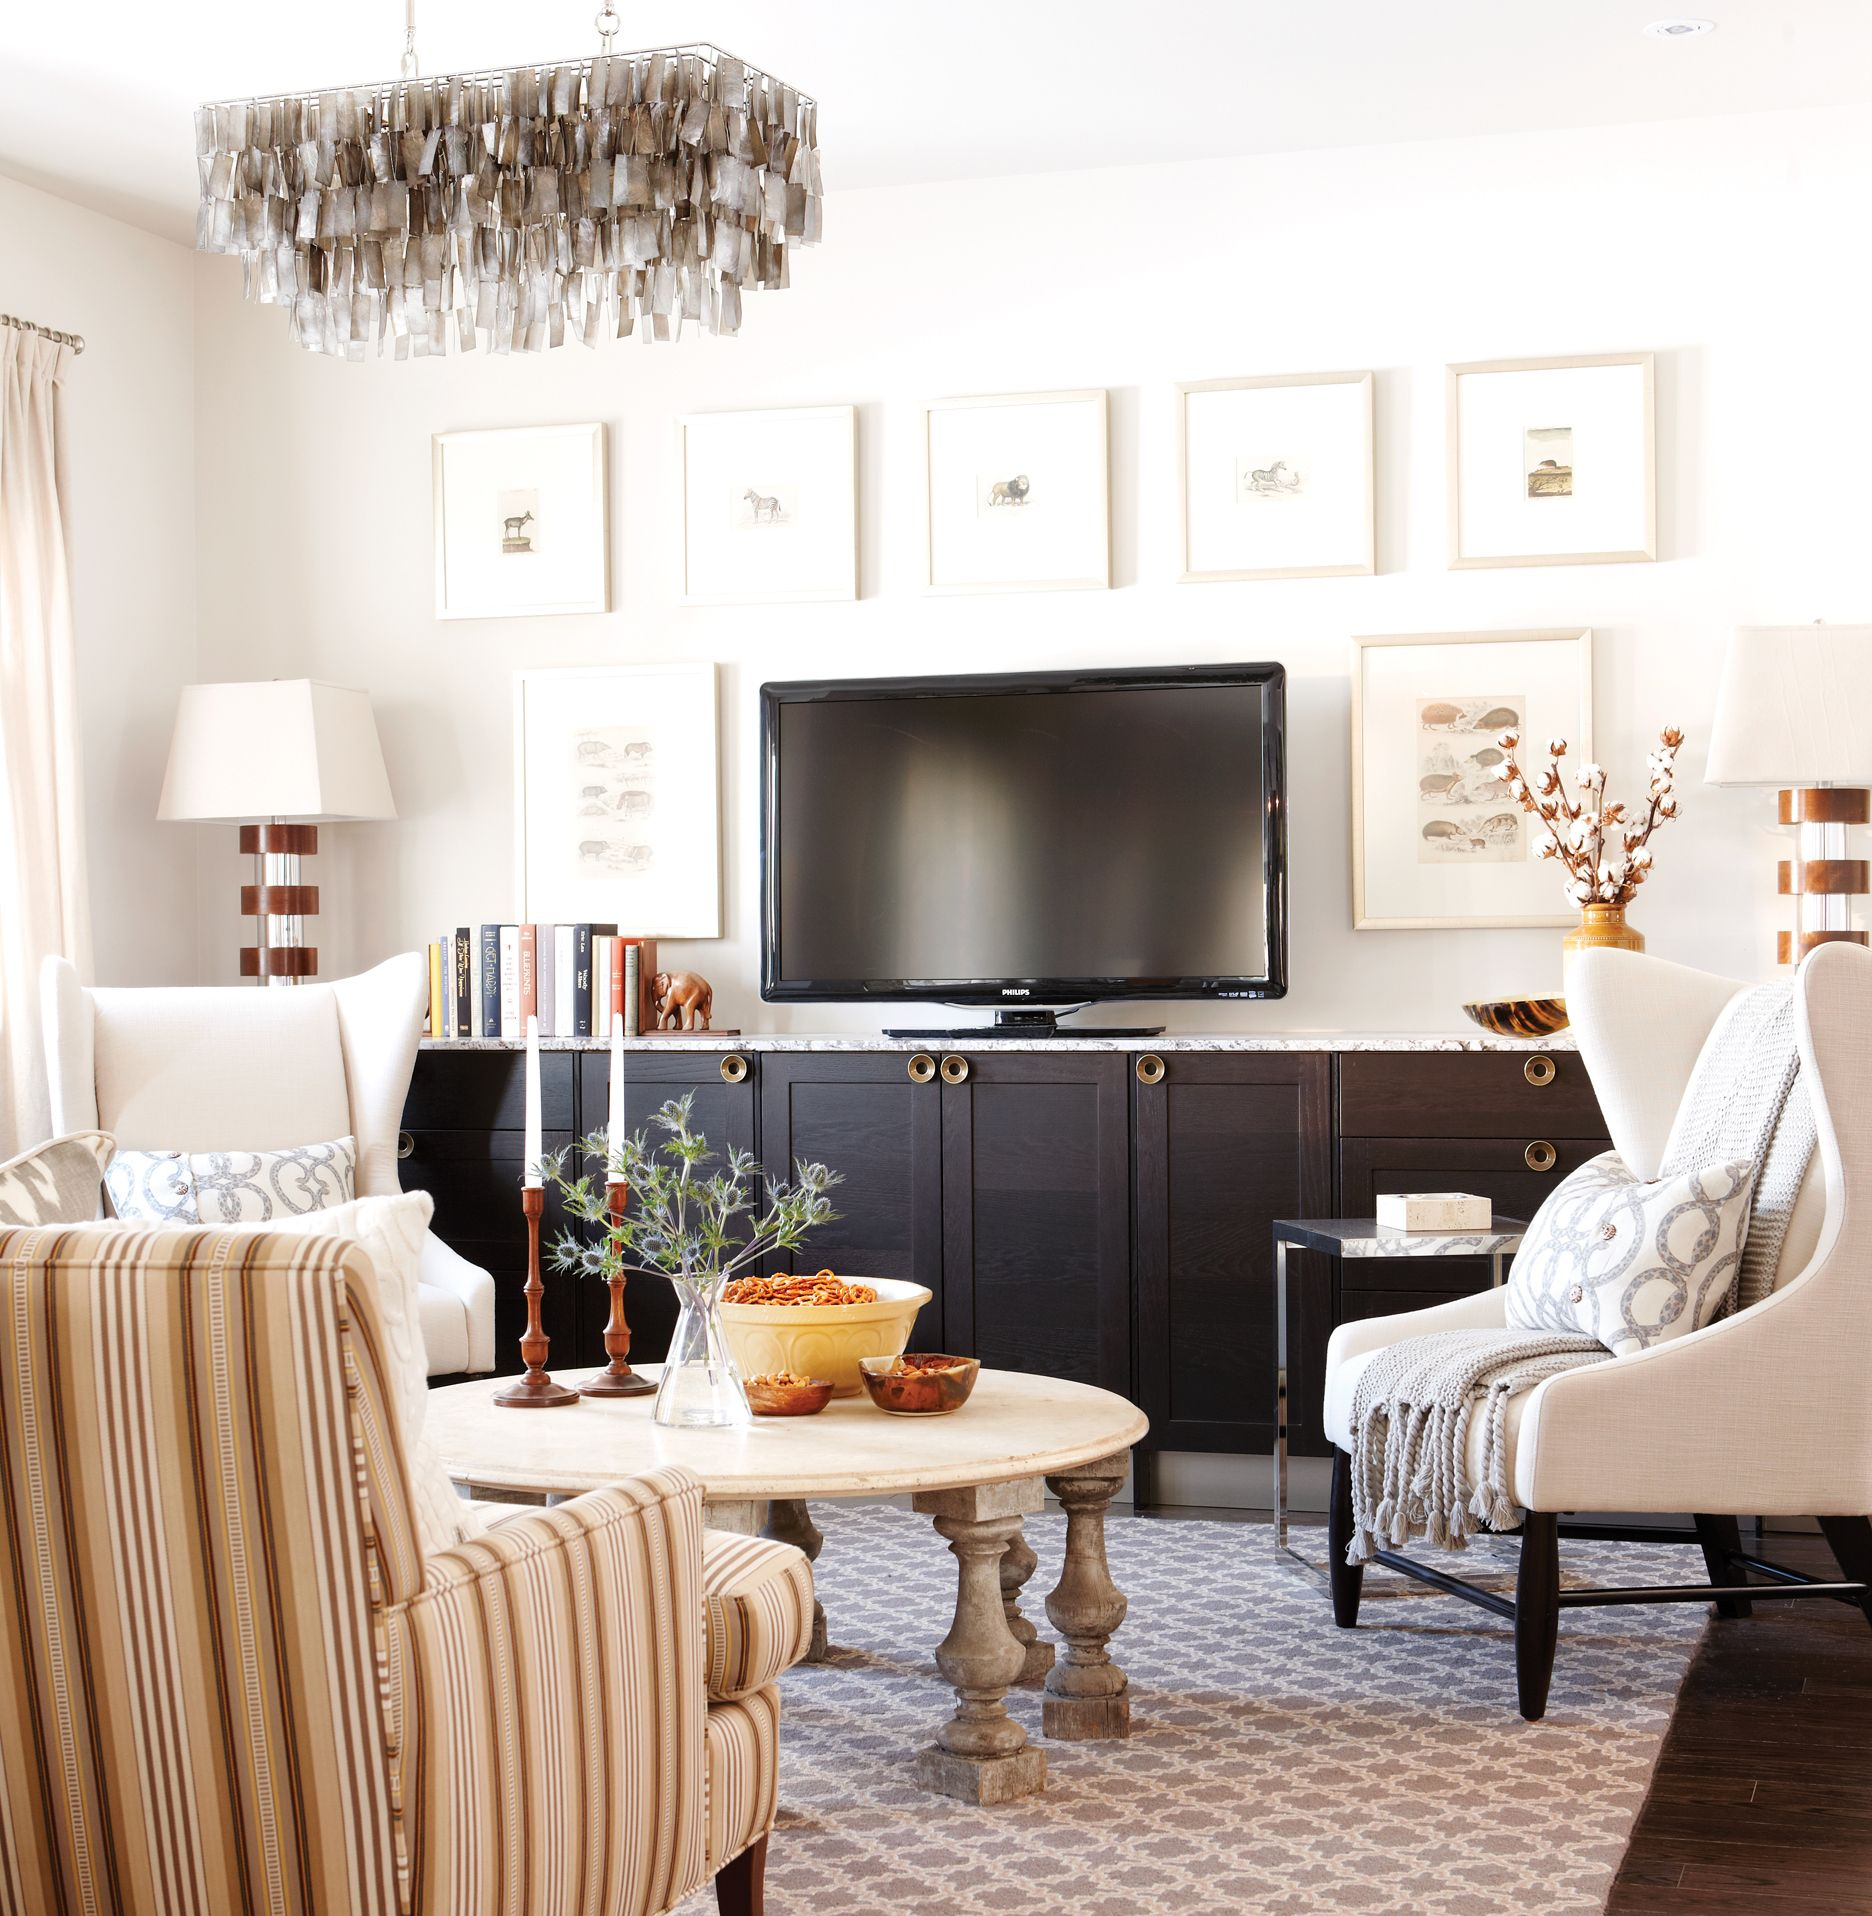 creating a focal point in a living room designer richardson s tips on creating a stylish 28029